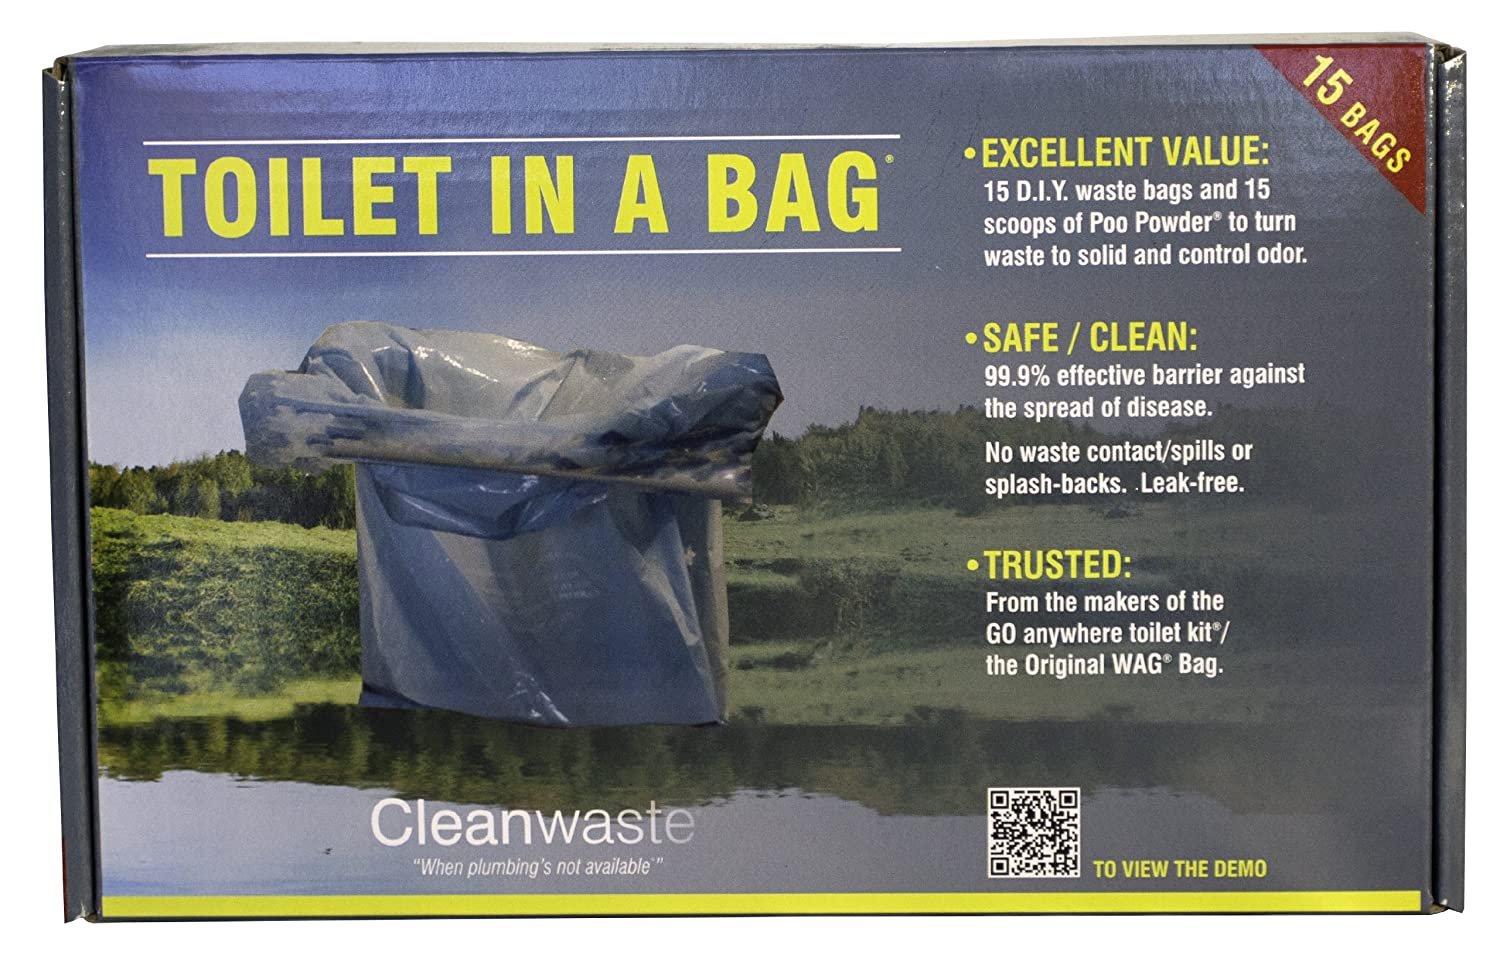 Cleanwaste Toilet in a Bag Toilet Kit, 15-Pack, Blue: Amazon.ca ...